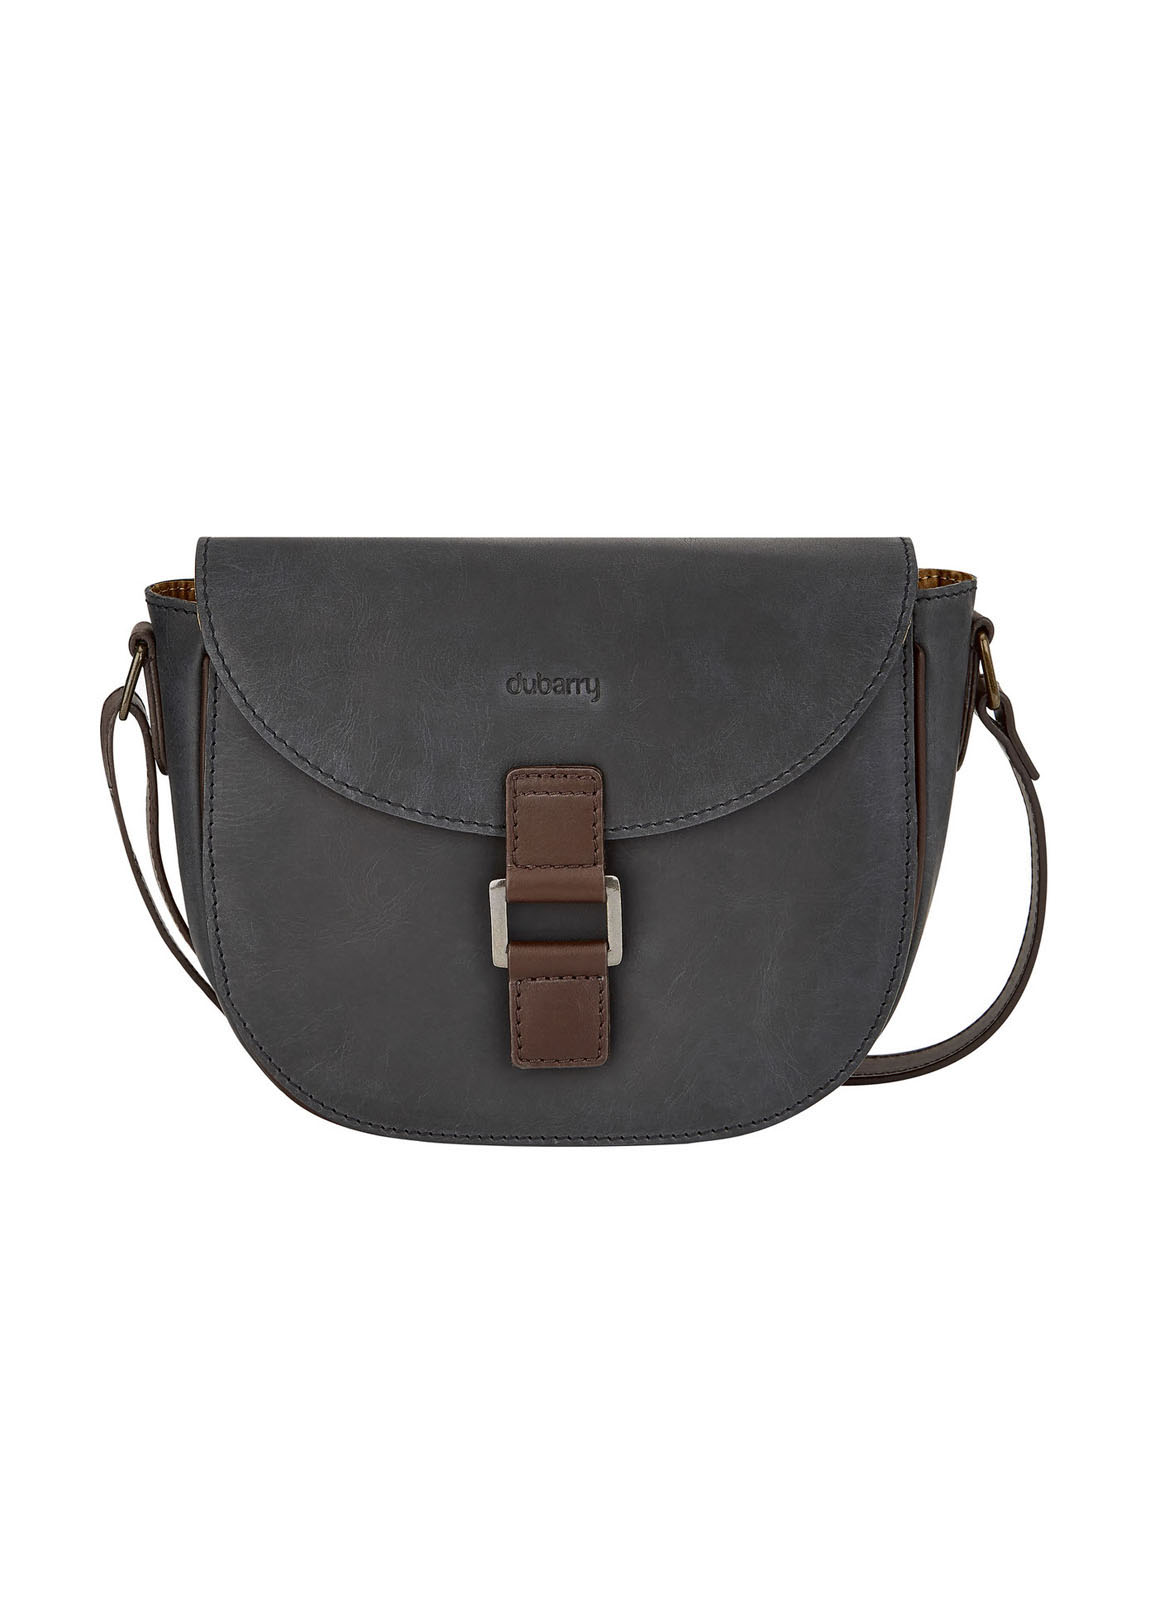 Ballybay_Cross_Body_Bag_Black_Brown_Image_1